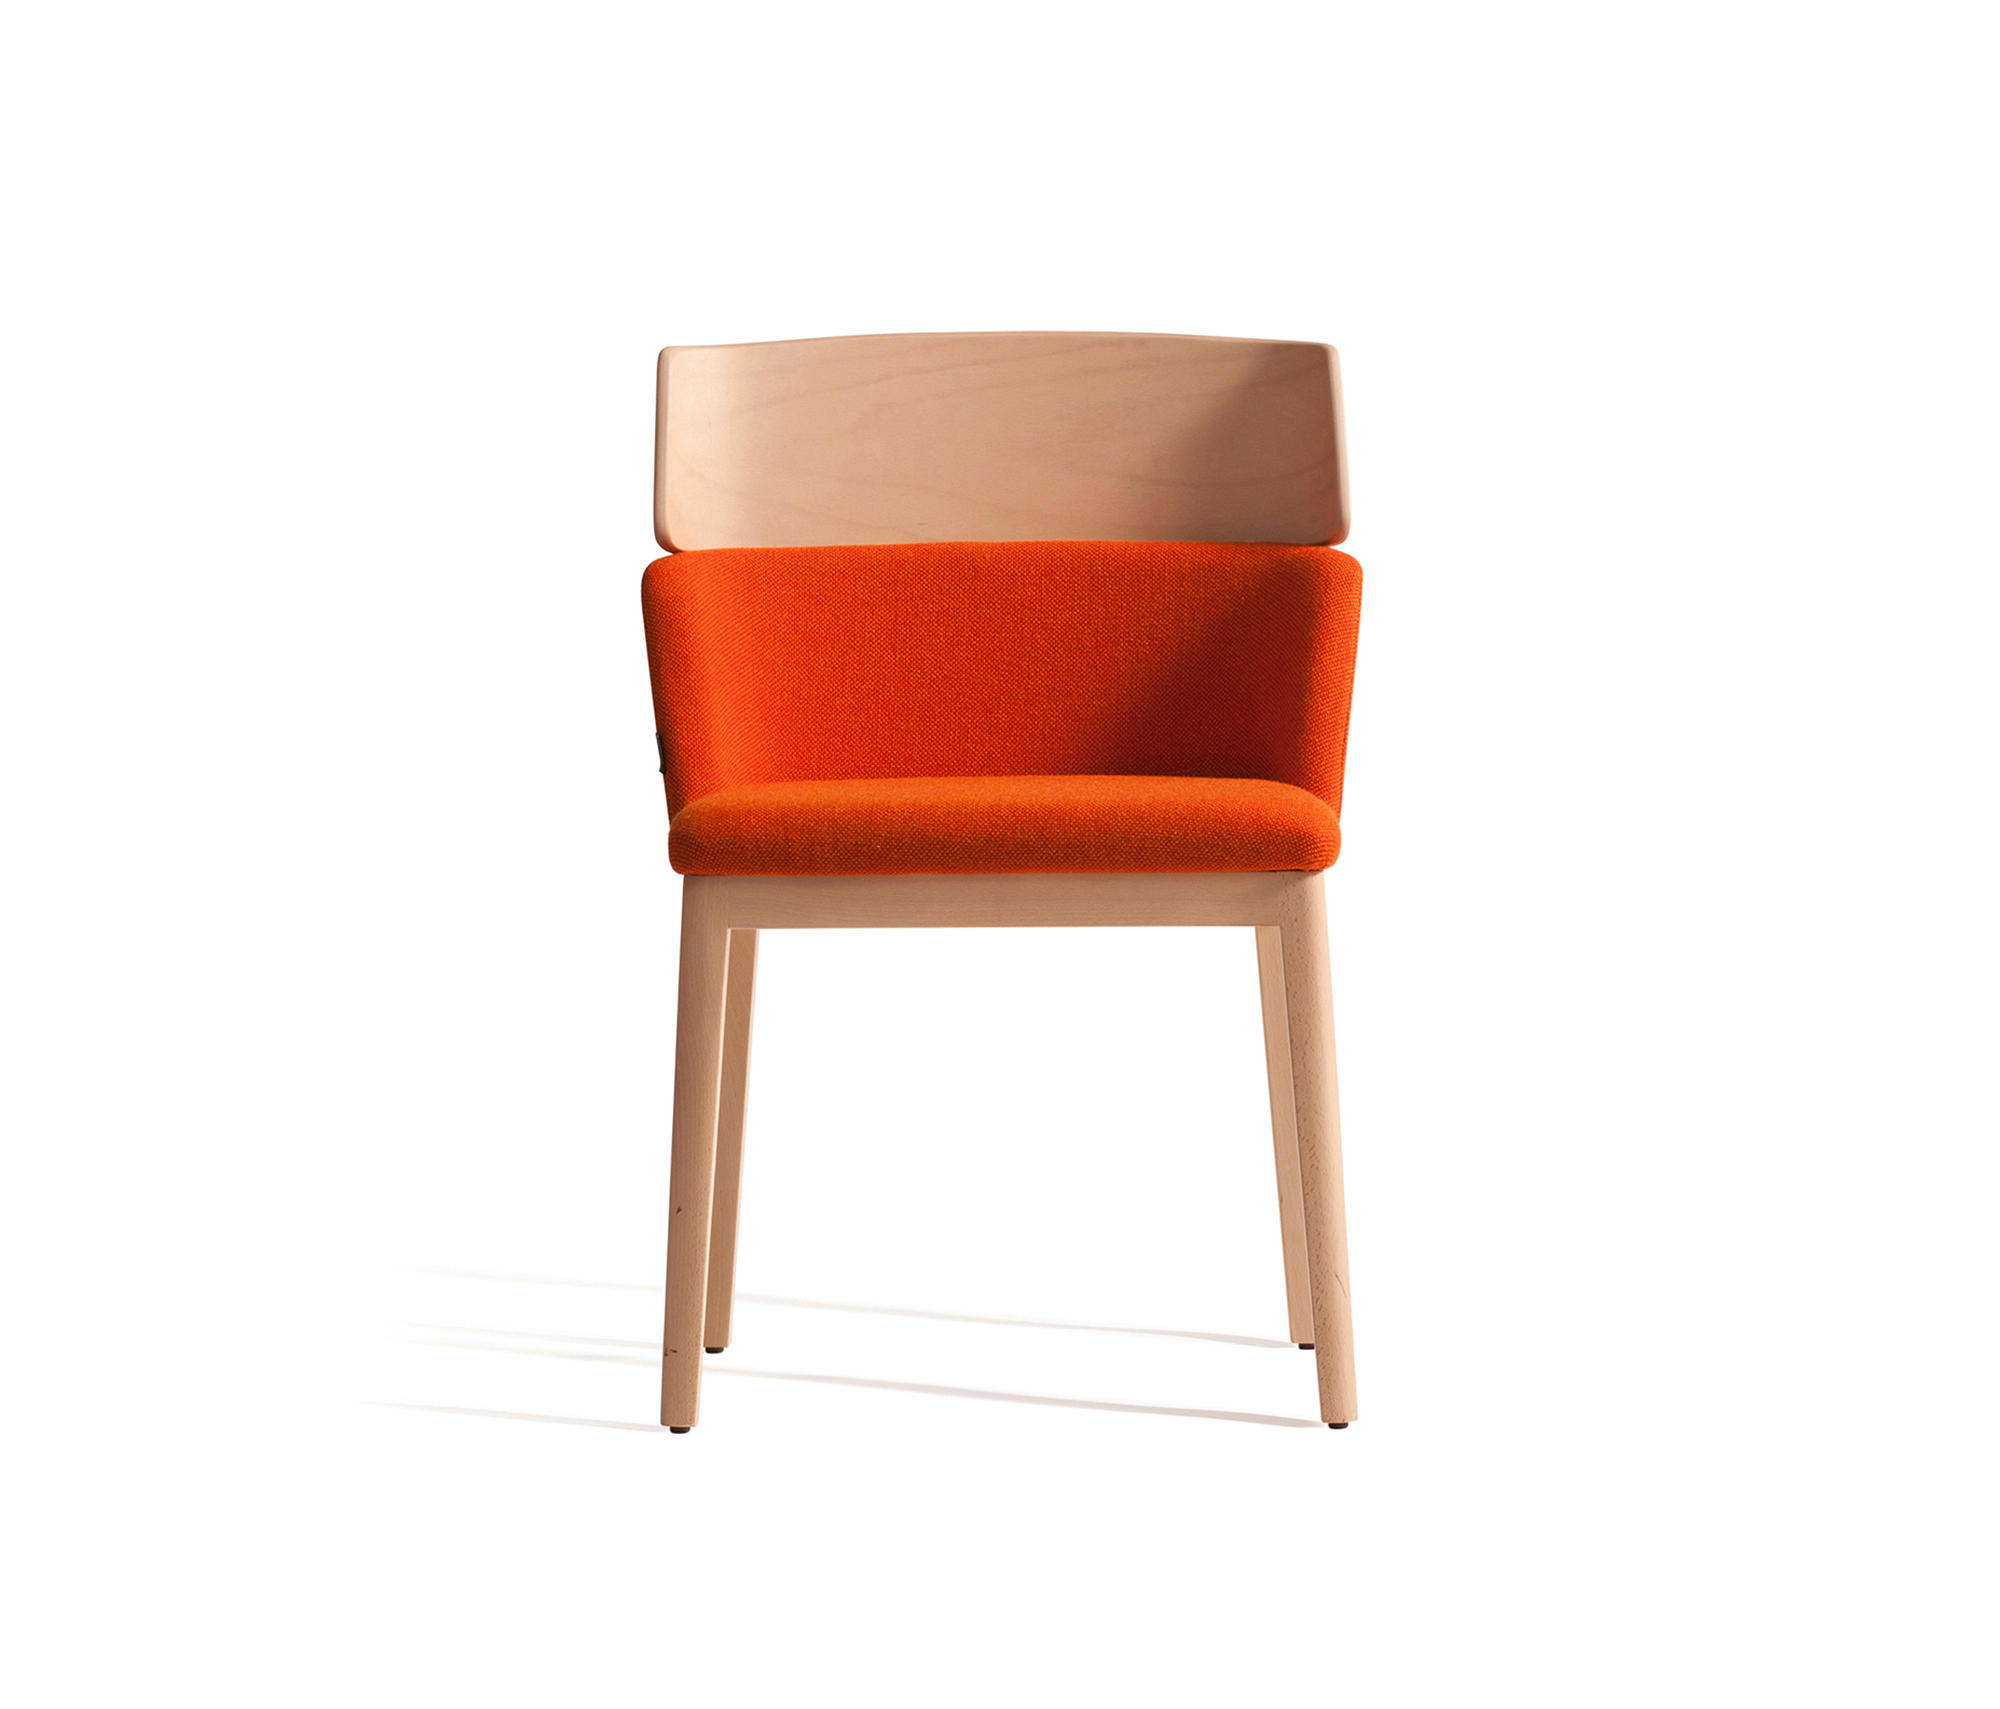 Concord 522 Wm Chairs From Capdell Architonic